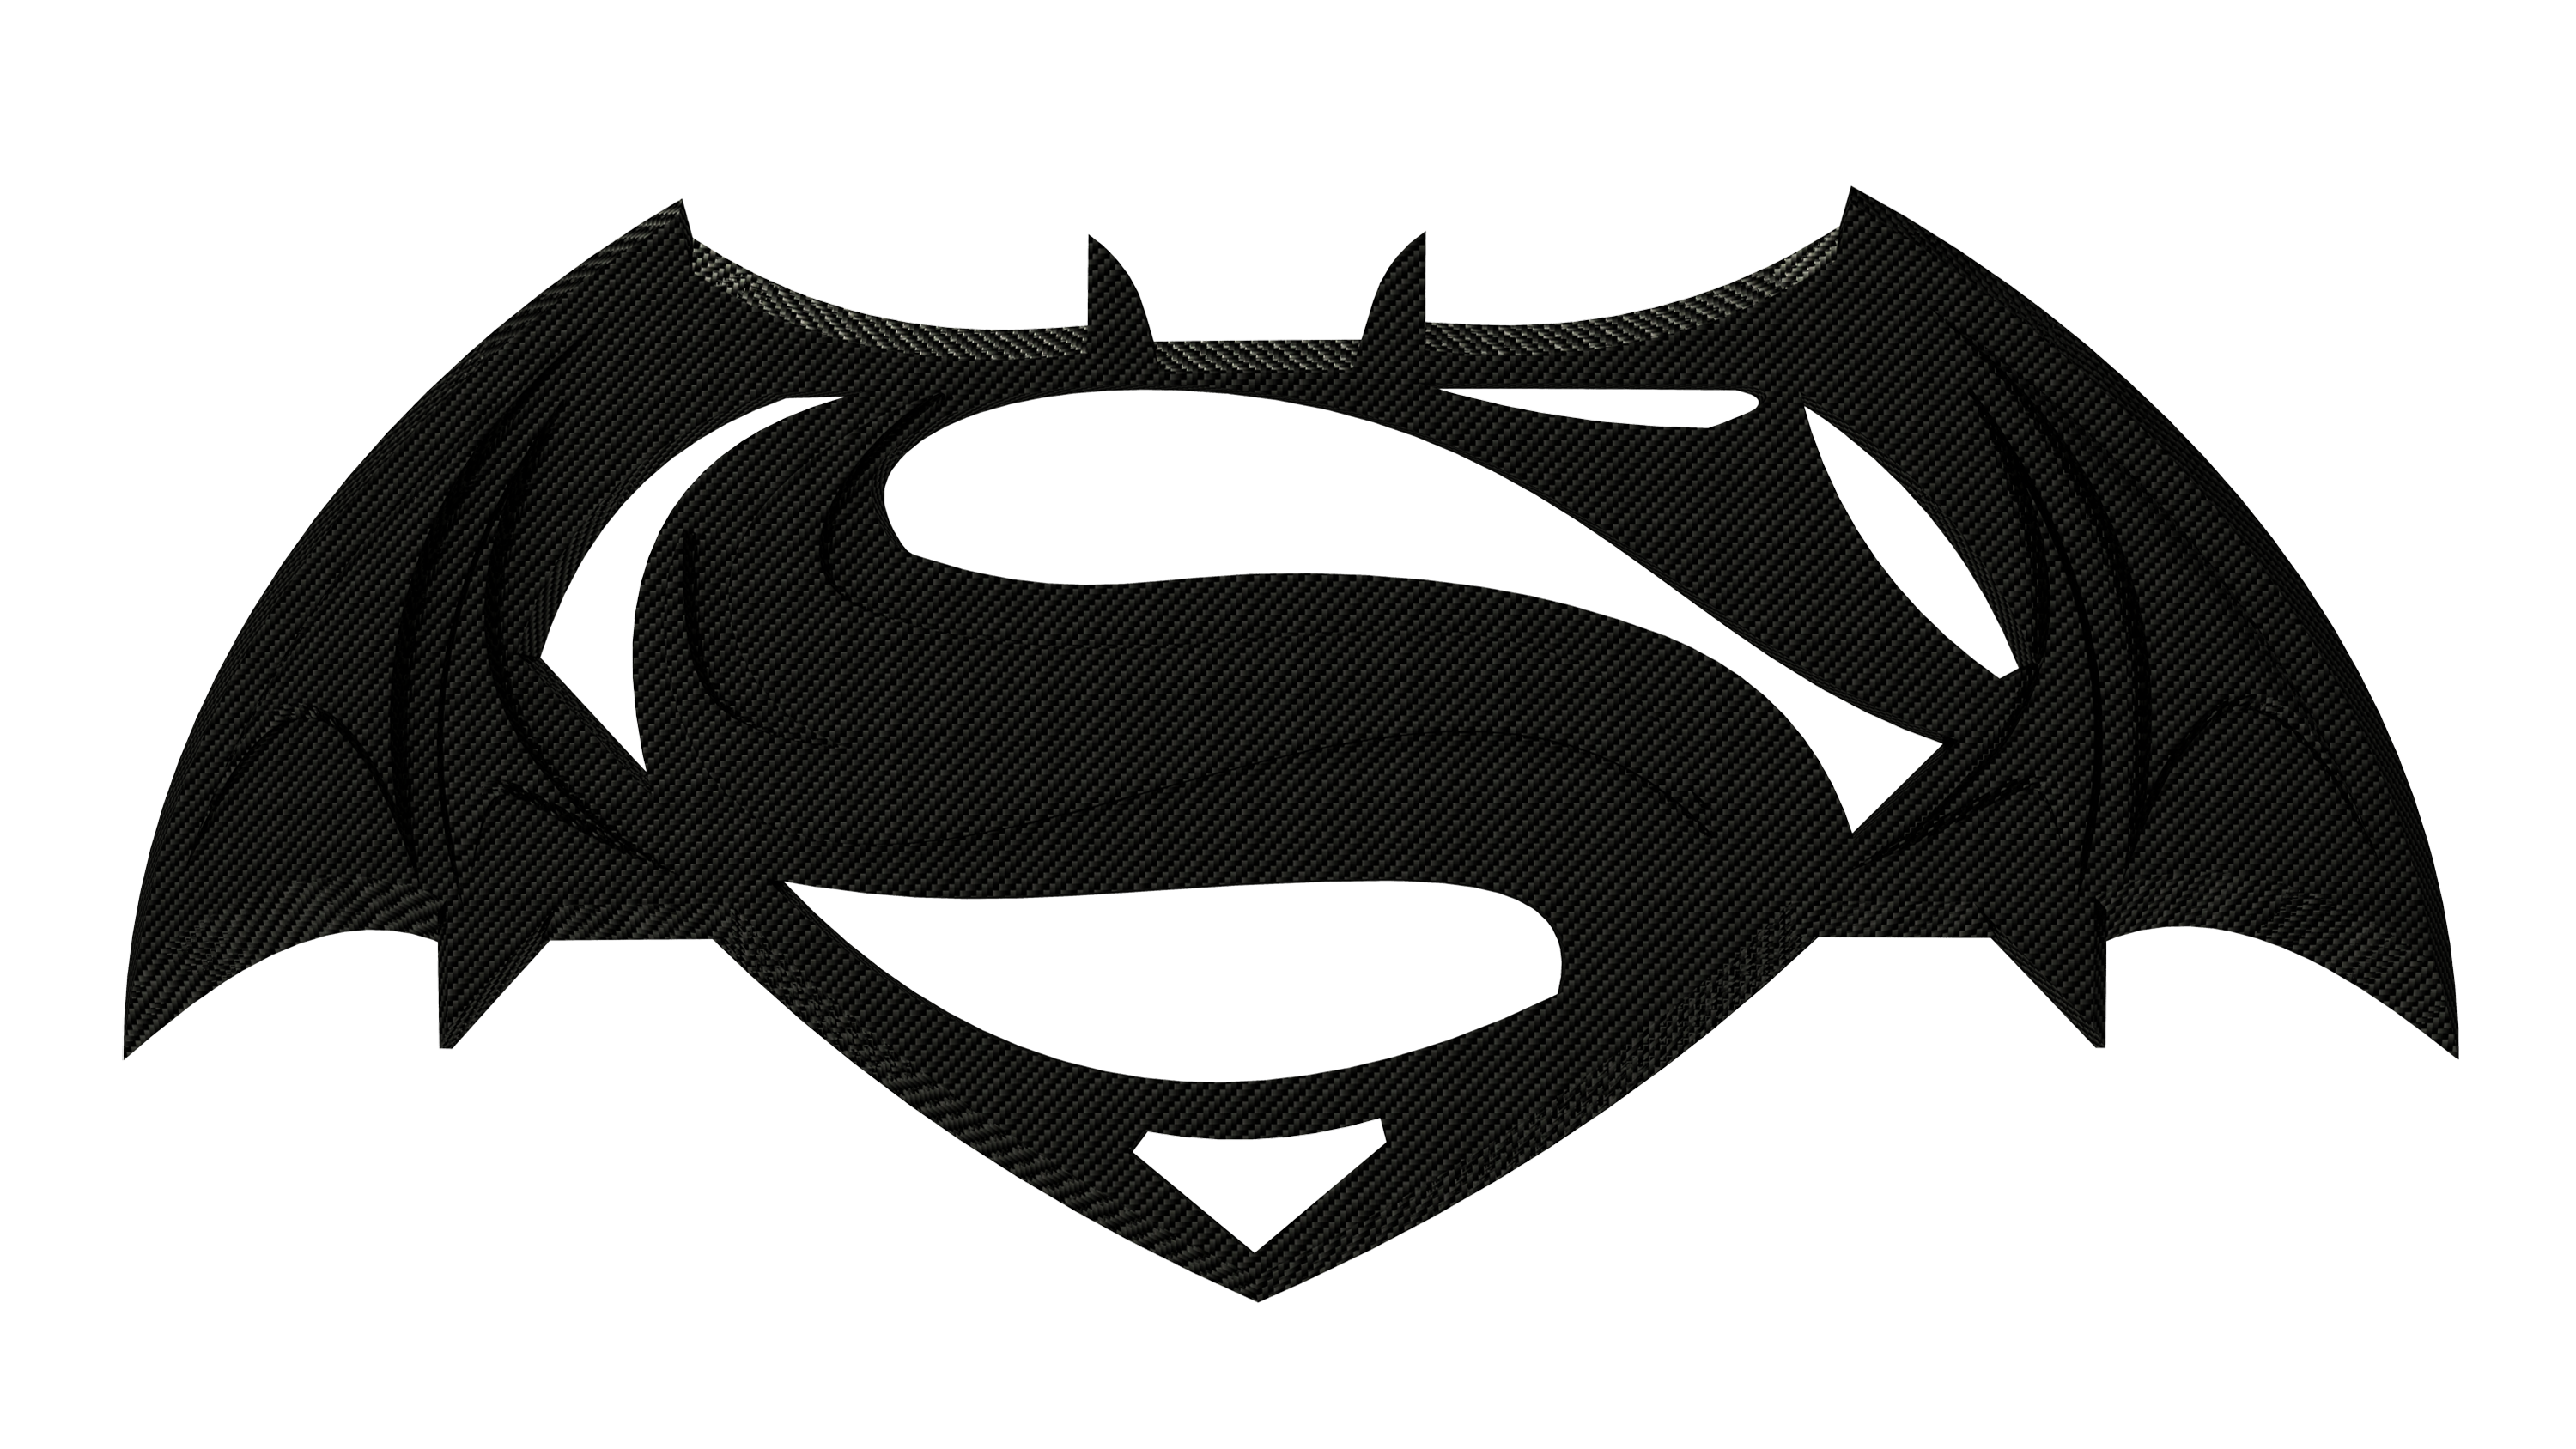 500 superman logo wallpapers hd images vectors free download batman and superman logo voltagebd Image collections